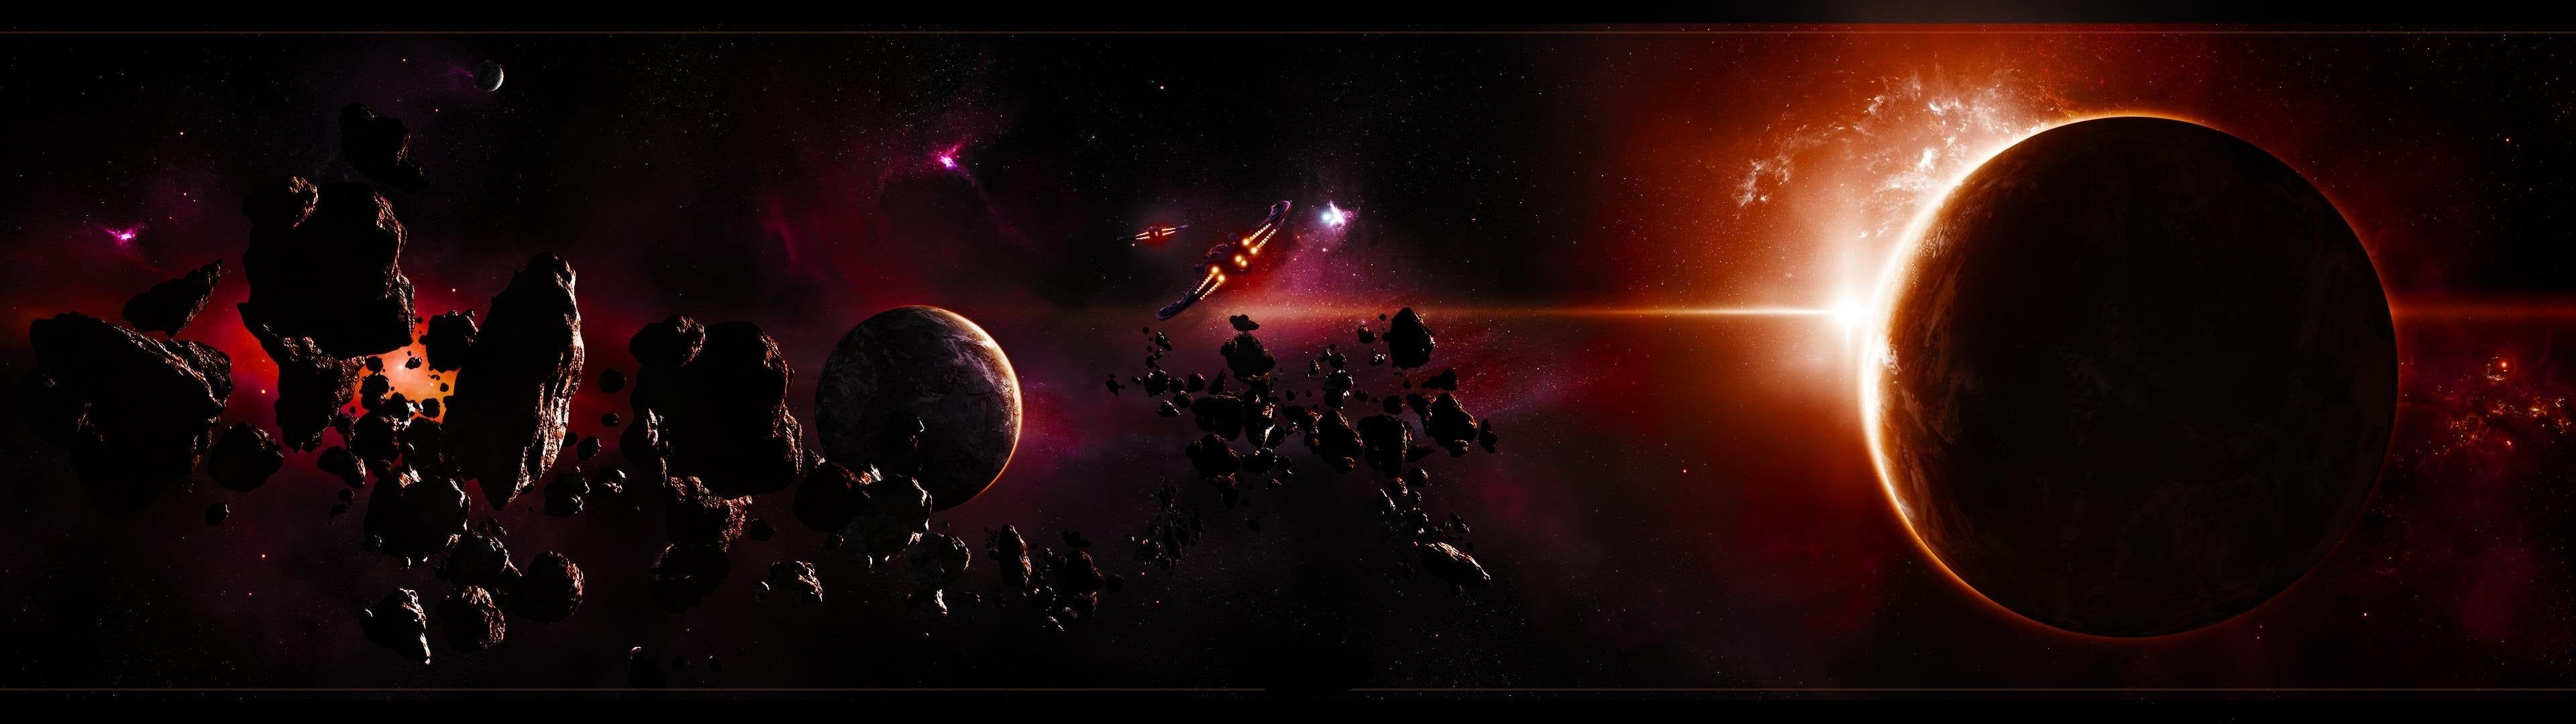 Multicolored Planet Wallpaper Space Space Dual Multi Screen Monitor 3840x1080 4k Wallpaper Hdwallpape In 2020 Planets Wallpaper Space Art Space Art Wallpaper